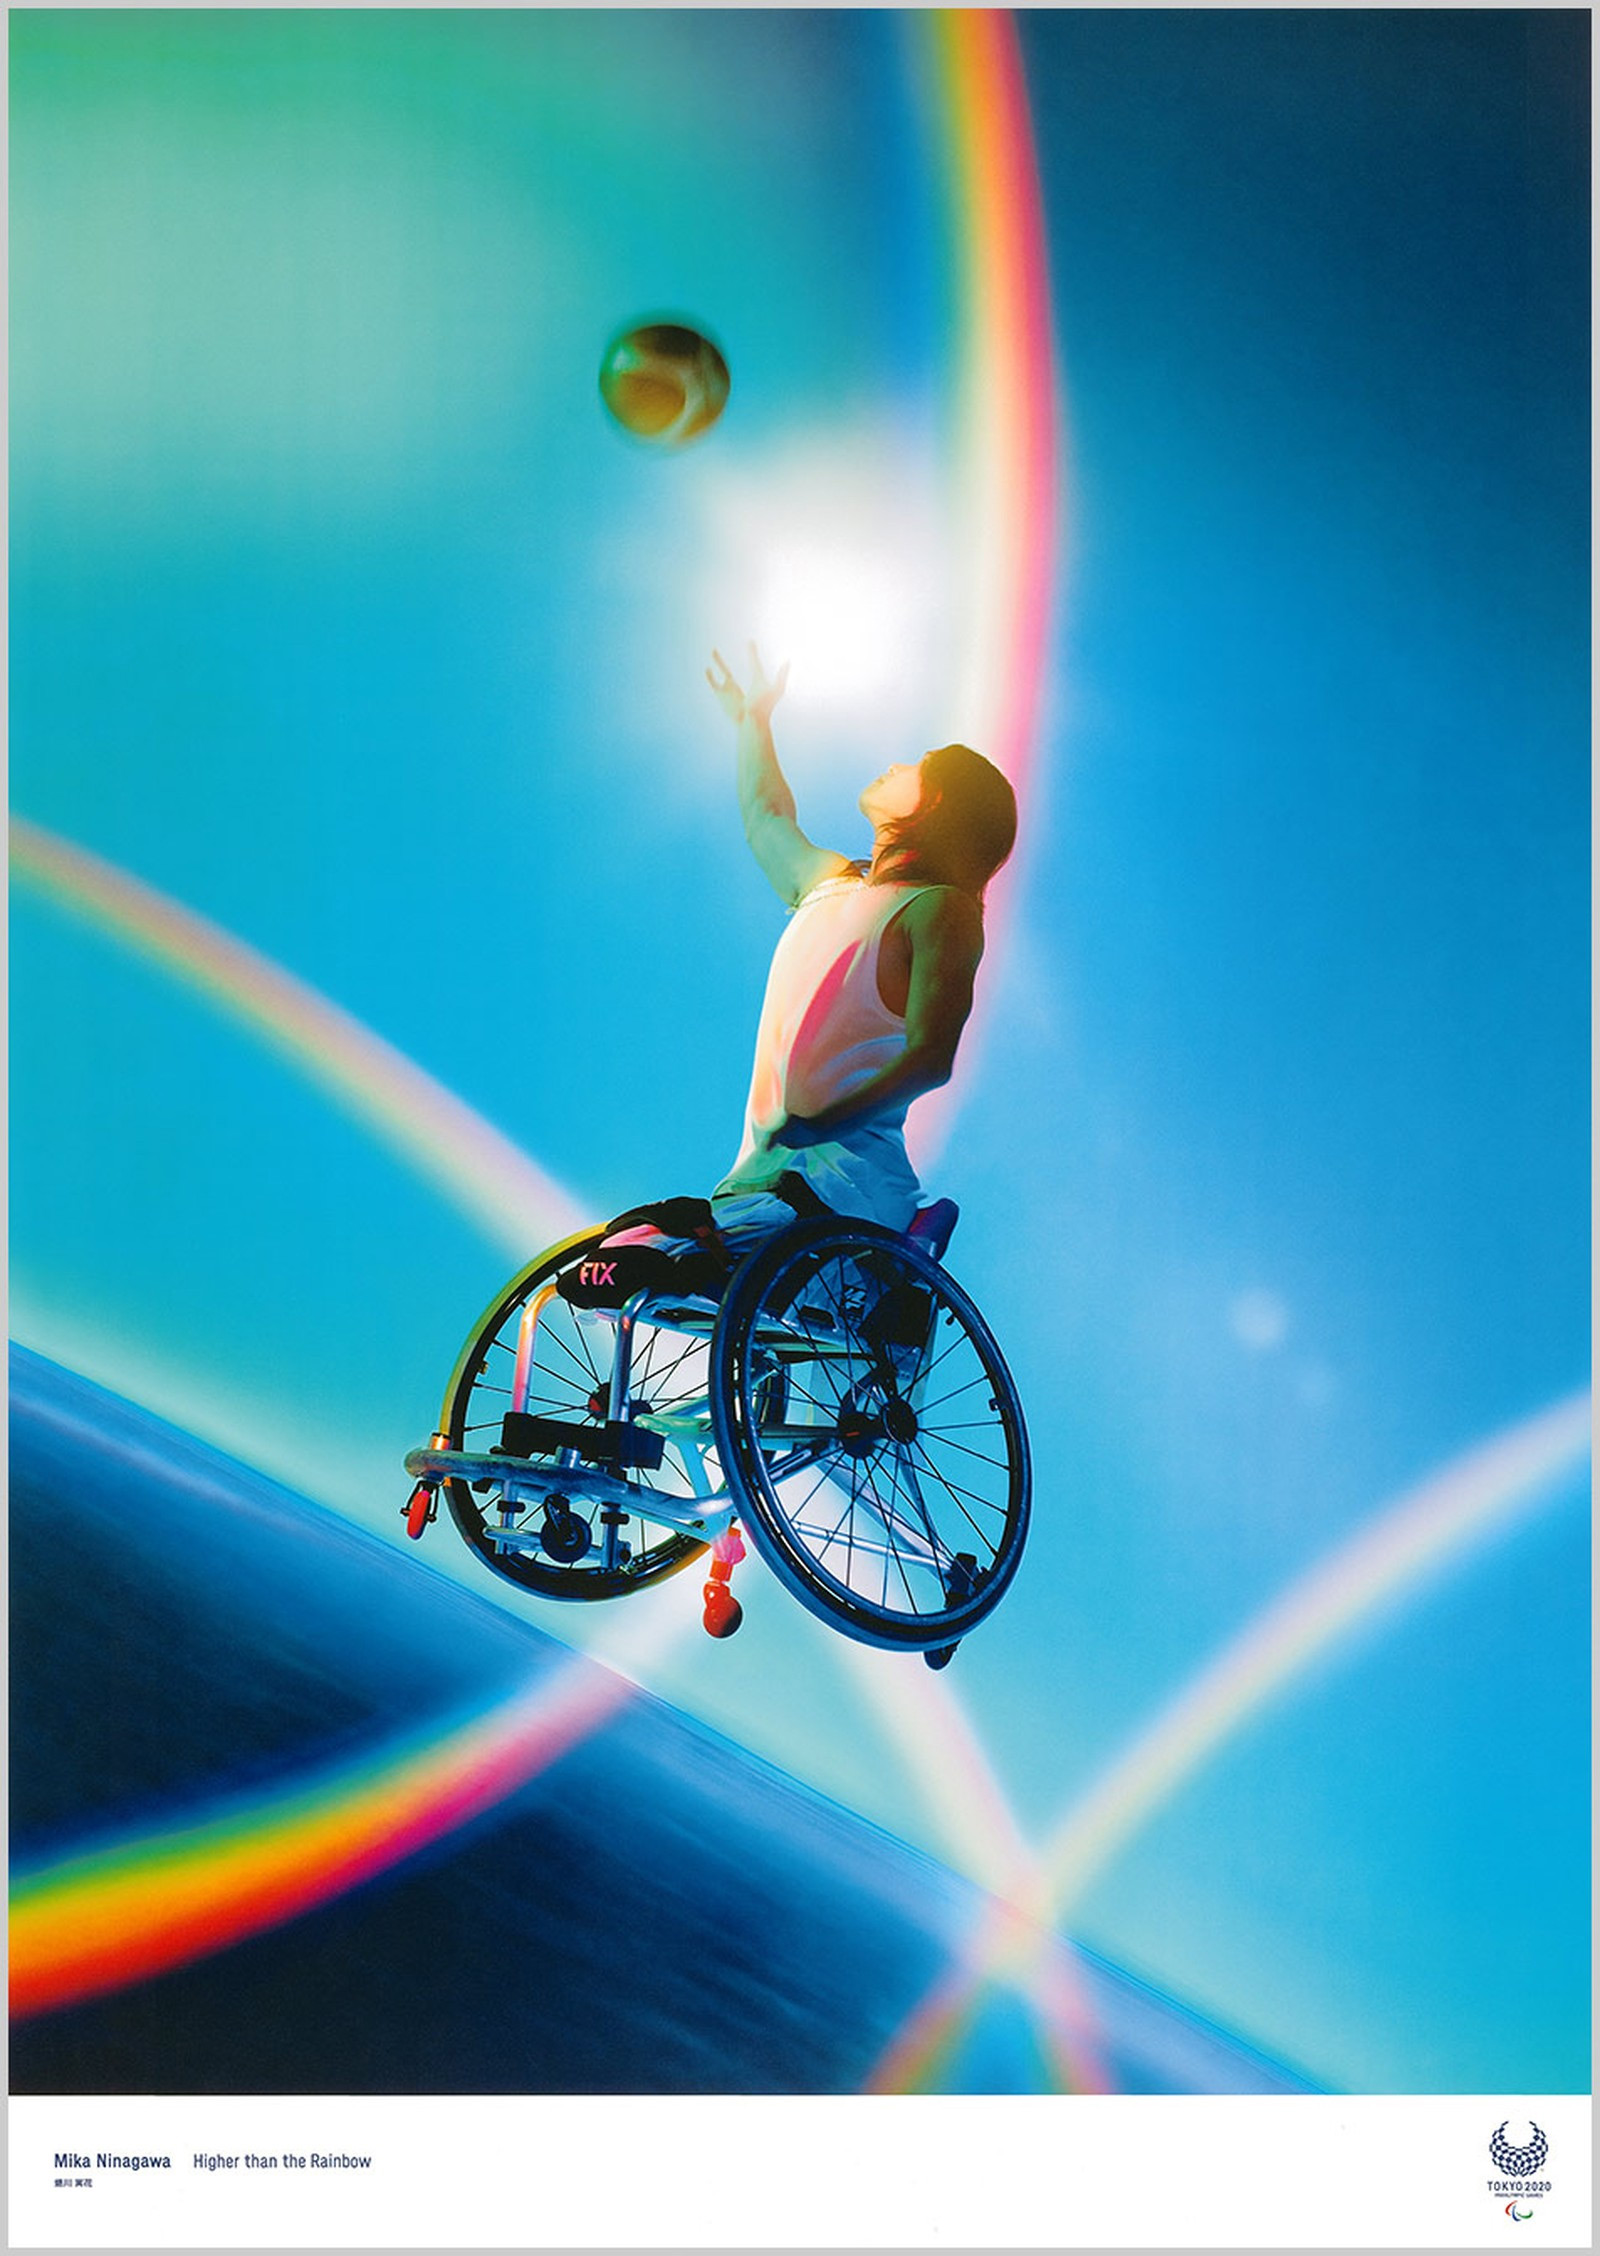 The Tokyo 2020 Olympic and Paralympic Posters Feature a Wildly Diverse Blend of Artistic Styles